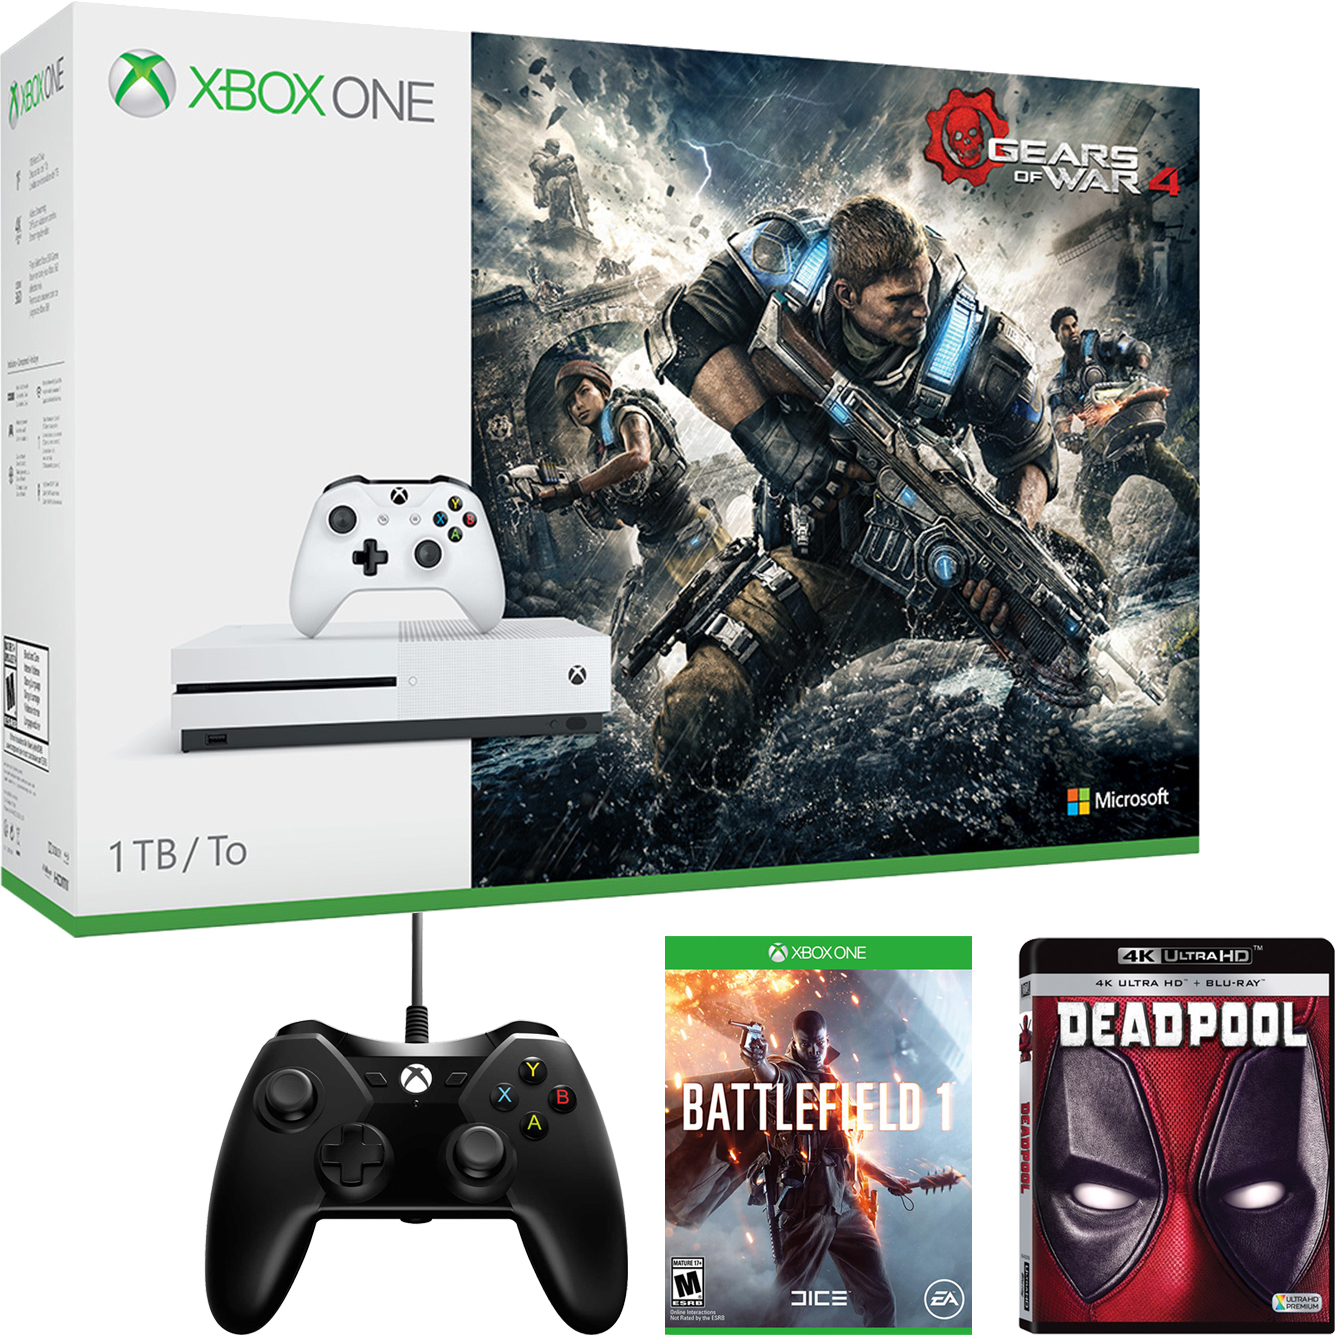 Xbox One S 1TB with Your Choice of Bonus Game, 4k UltraHD Movie, and Controller